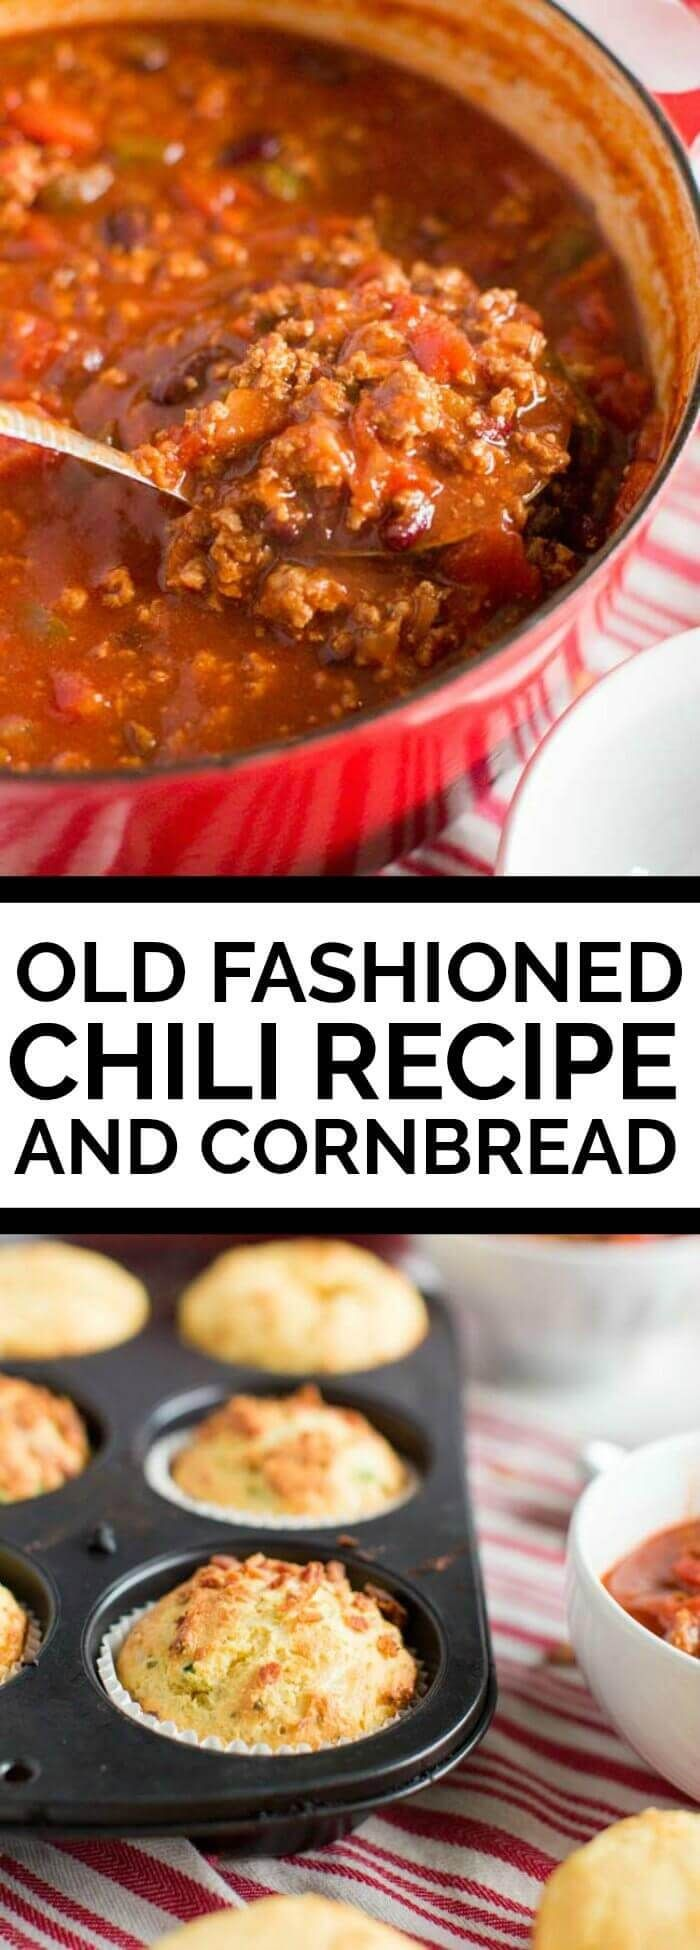 This old fashioned chili recipe will make you think of meals at this old fashioned chili recipe will make you think of meals at grandmas when you were little its hearty and filling the flavors are perfect forumfinder Choice Image